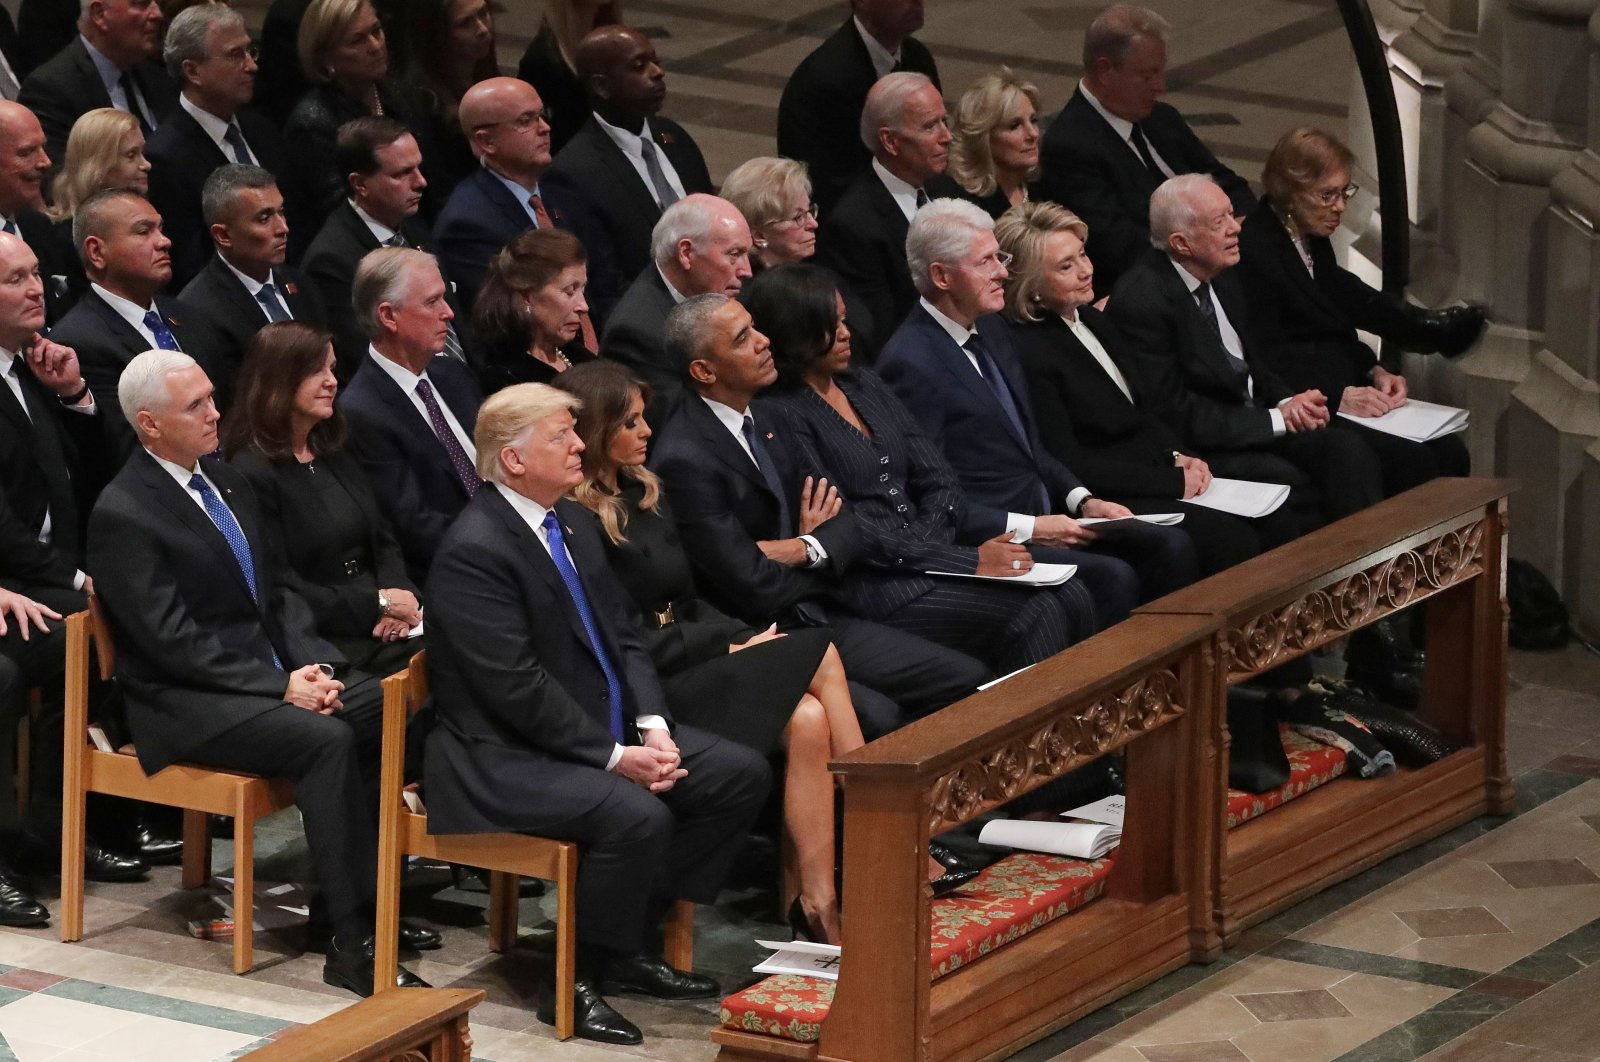 Former and incumbent U.S. presidents, vice presidents and first ladies attend the state funeral of former President George H.W. Bush at the National Cathedral, Washington, D.C., U.S., Dec. 5, 2018. (Getty Images)